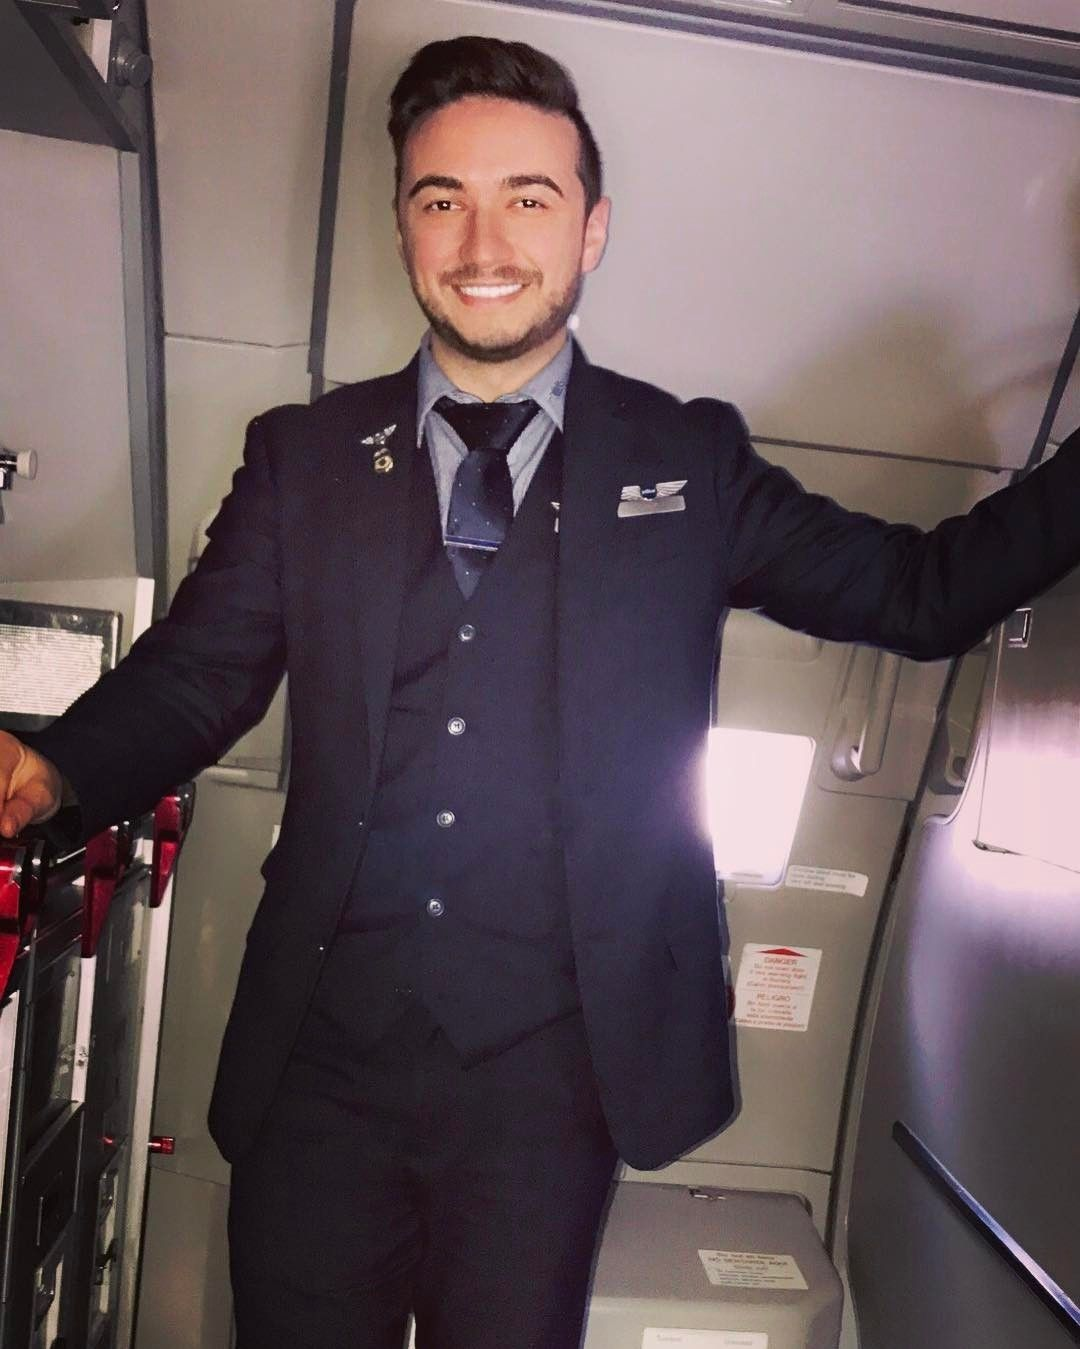 From Codyrhester Welcome Aboard How May I Be Of Service To You Flightattendant Flightcrew Cabincrew Crew Crew Gaybo Flight Crew Cabin Crew Crew Members